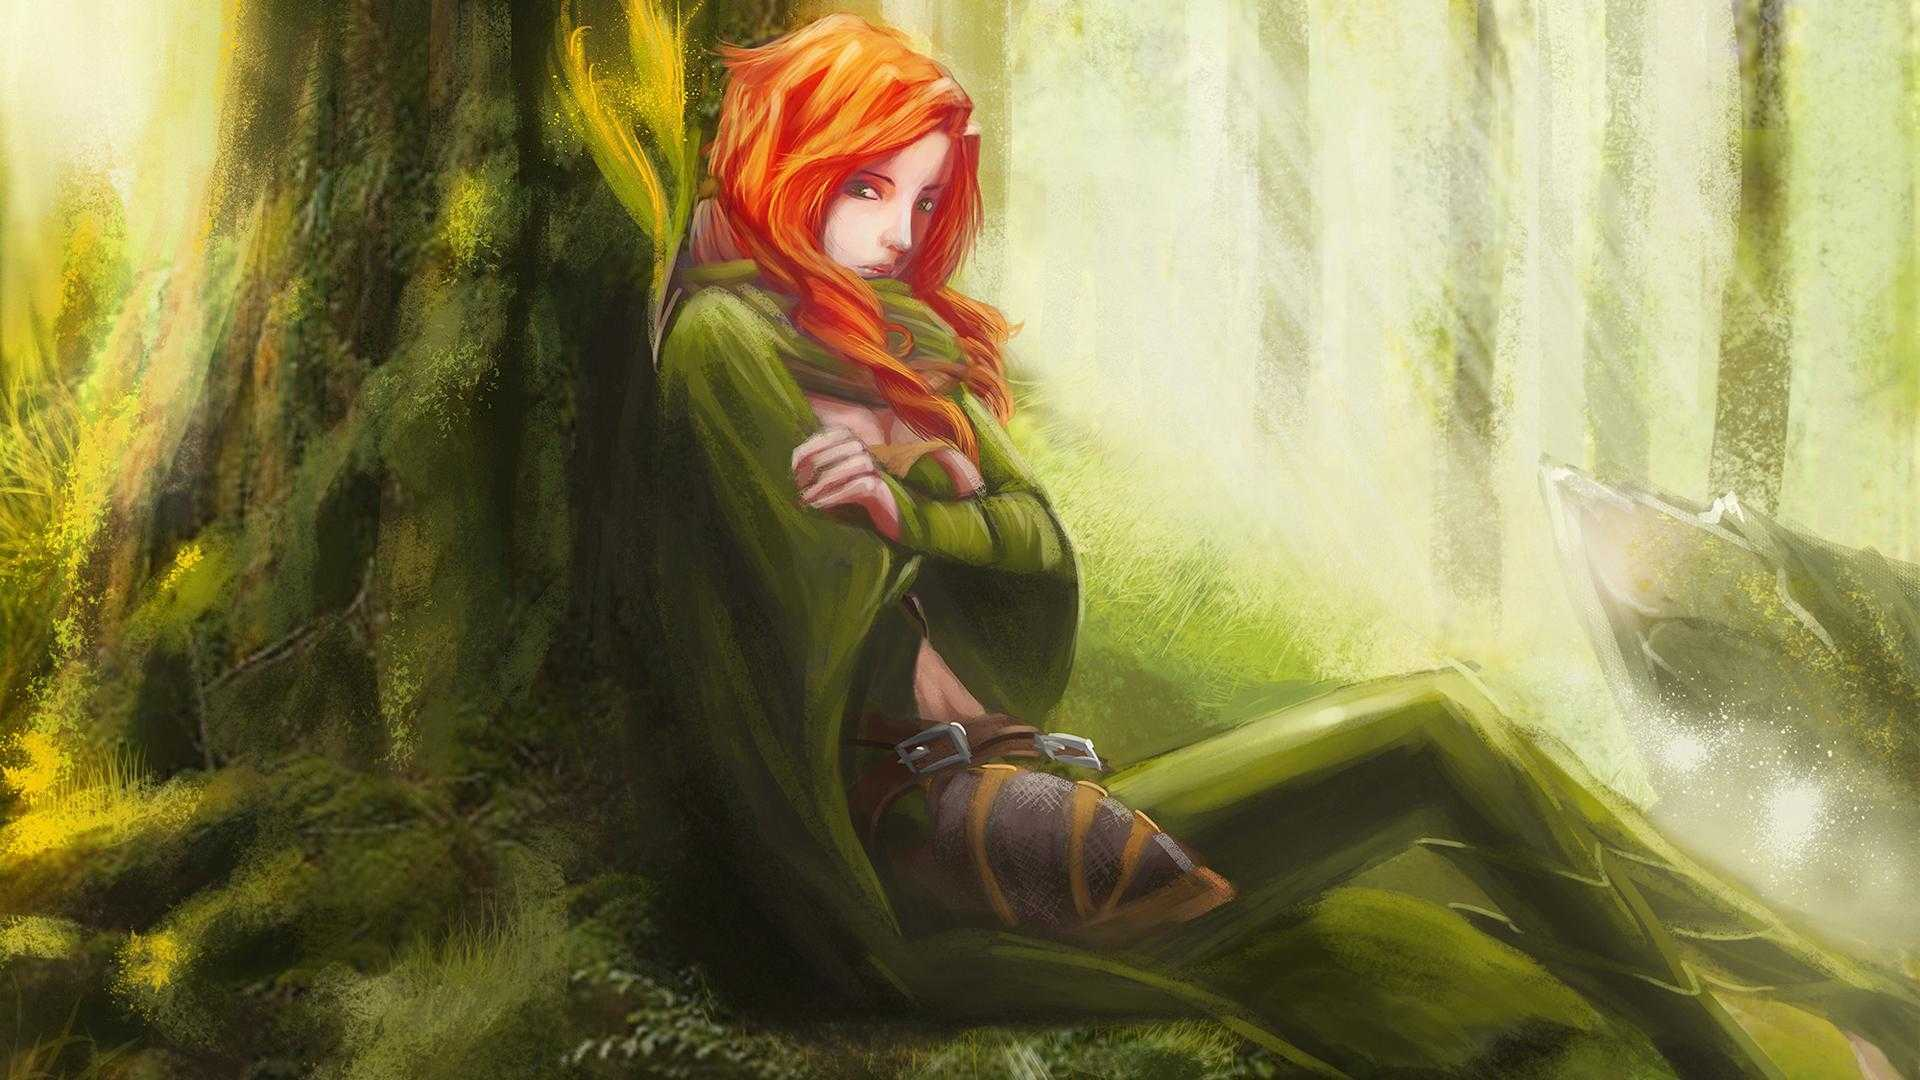 Dota 2 Hd Wallpaper Background And